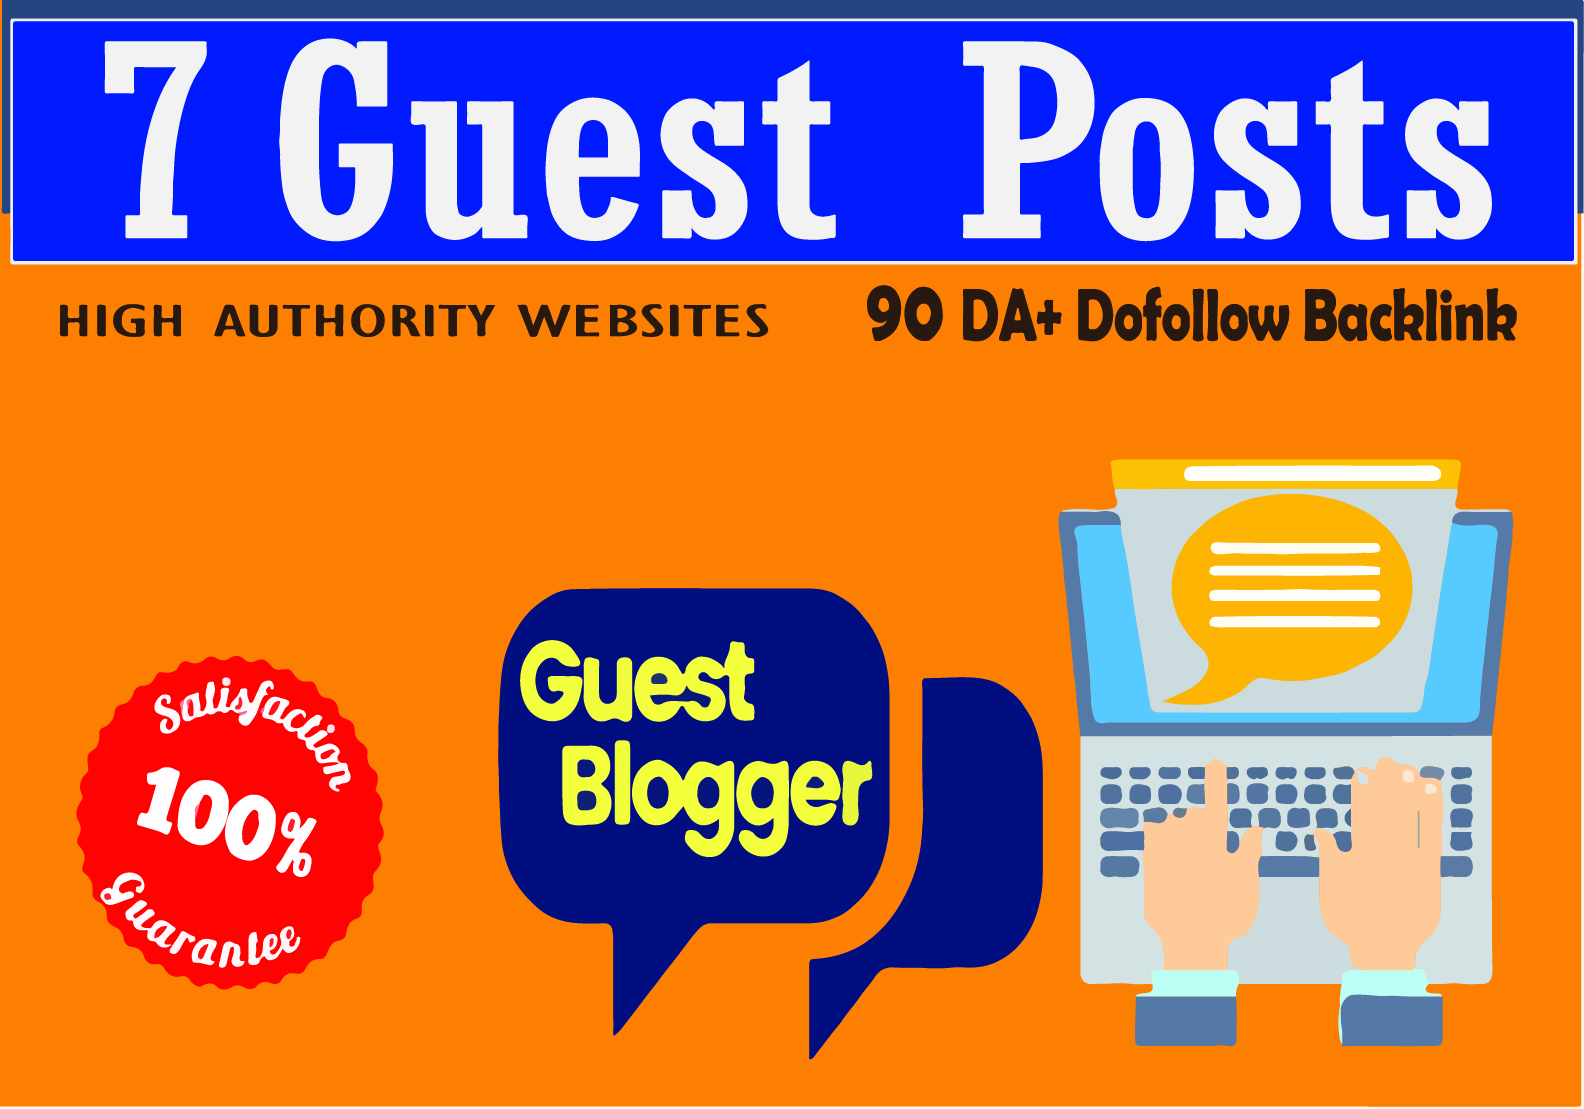 I will write and publish 7 guest posts on da 90 blog